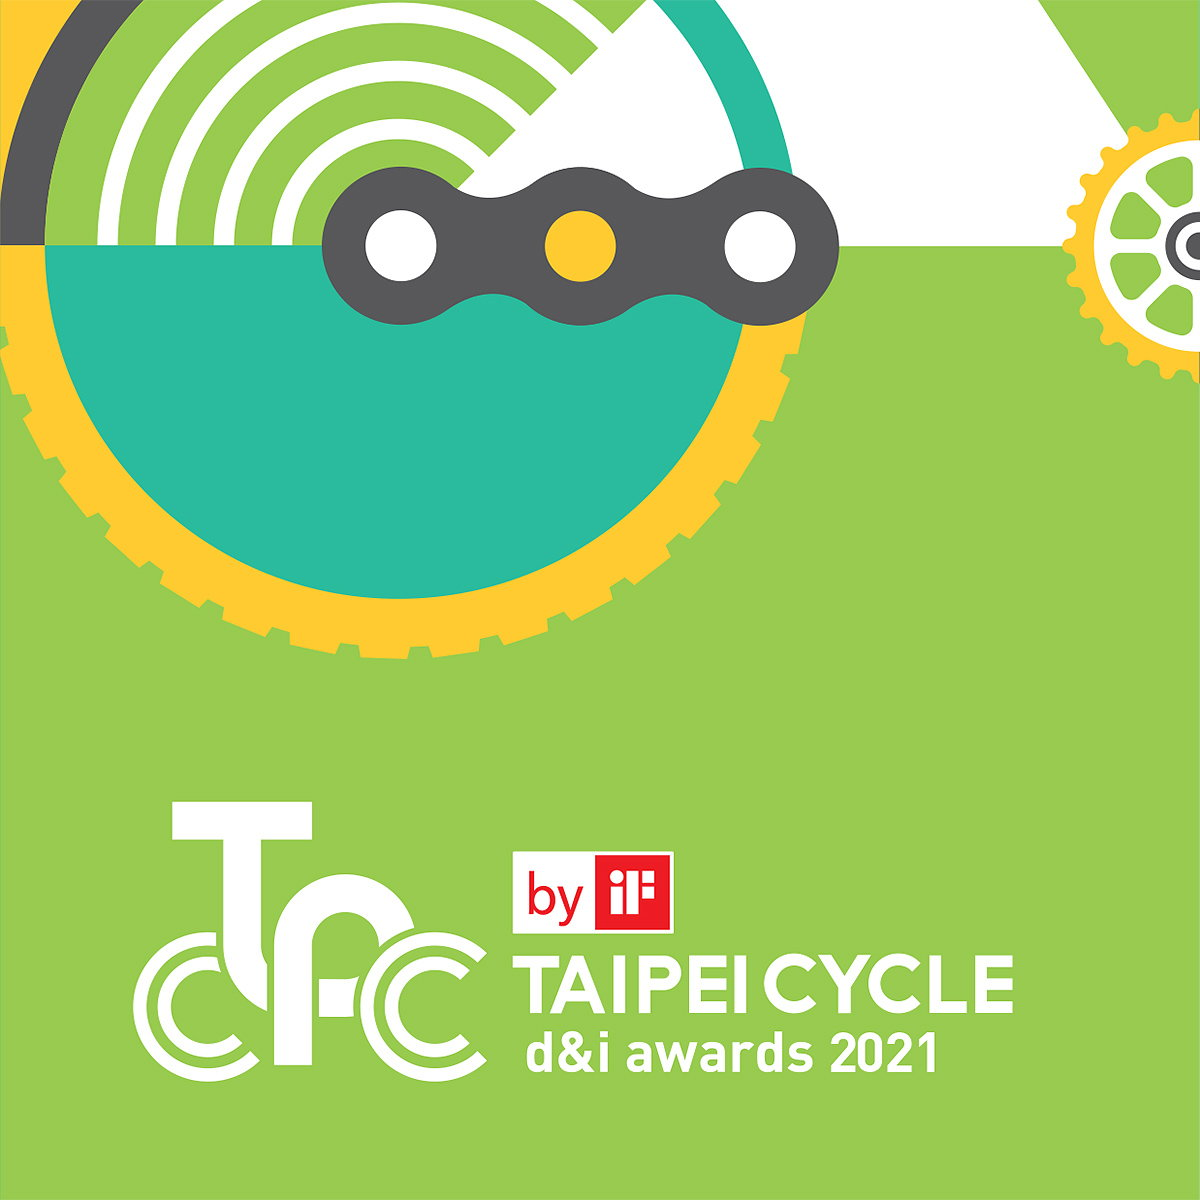 Taipei Cycle D&I Awards 2021